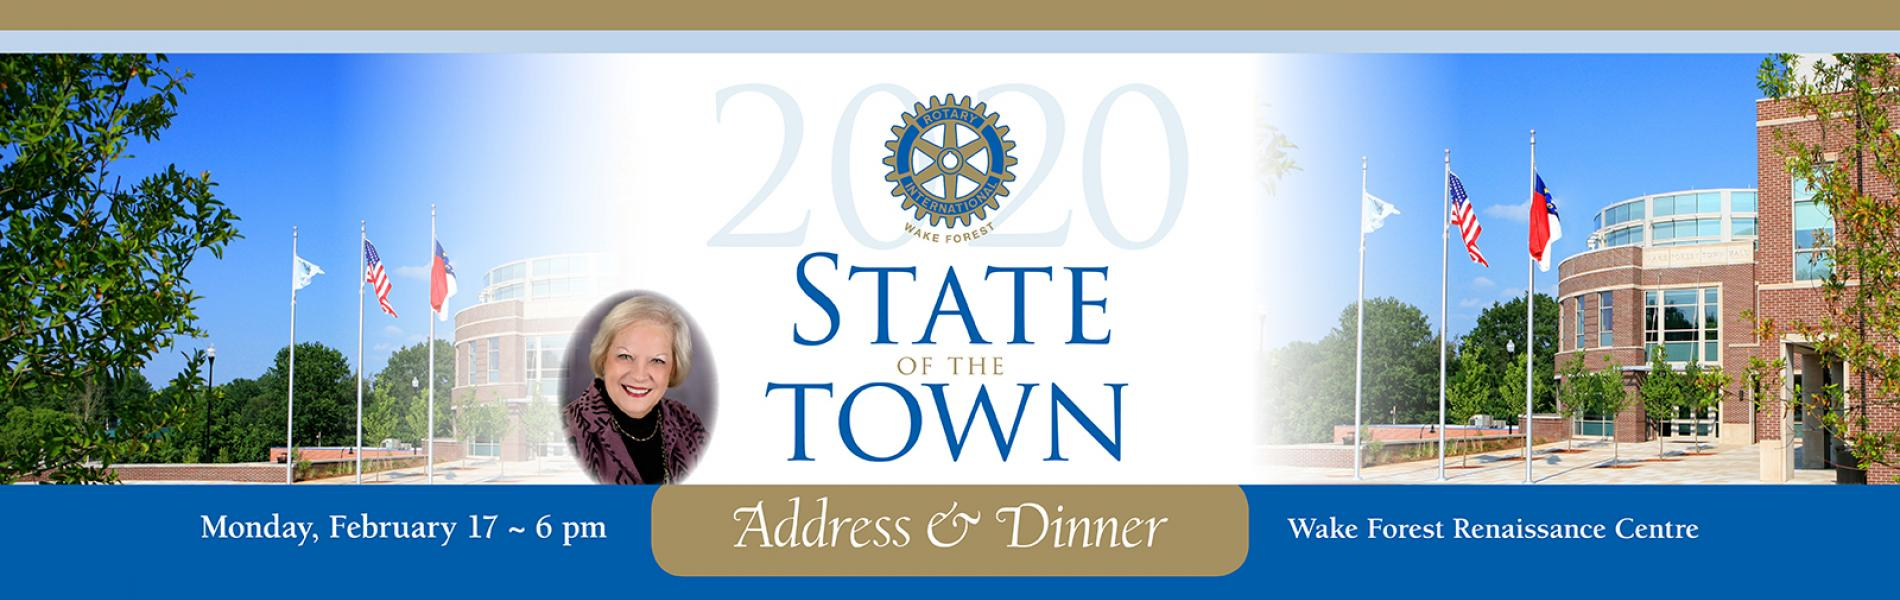 State of the Town Dinner and Address